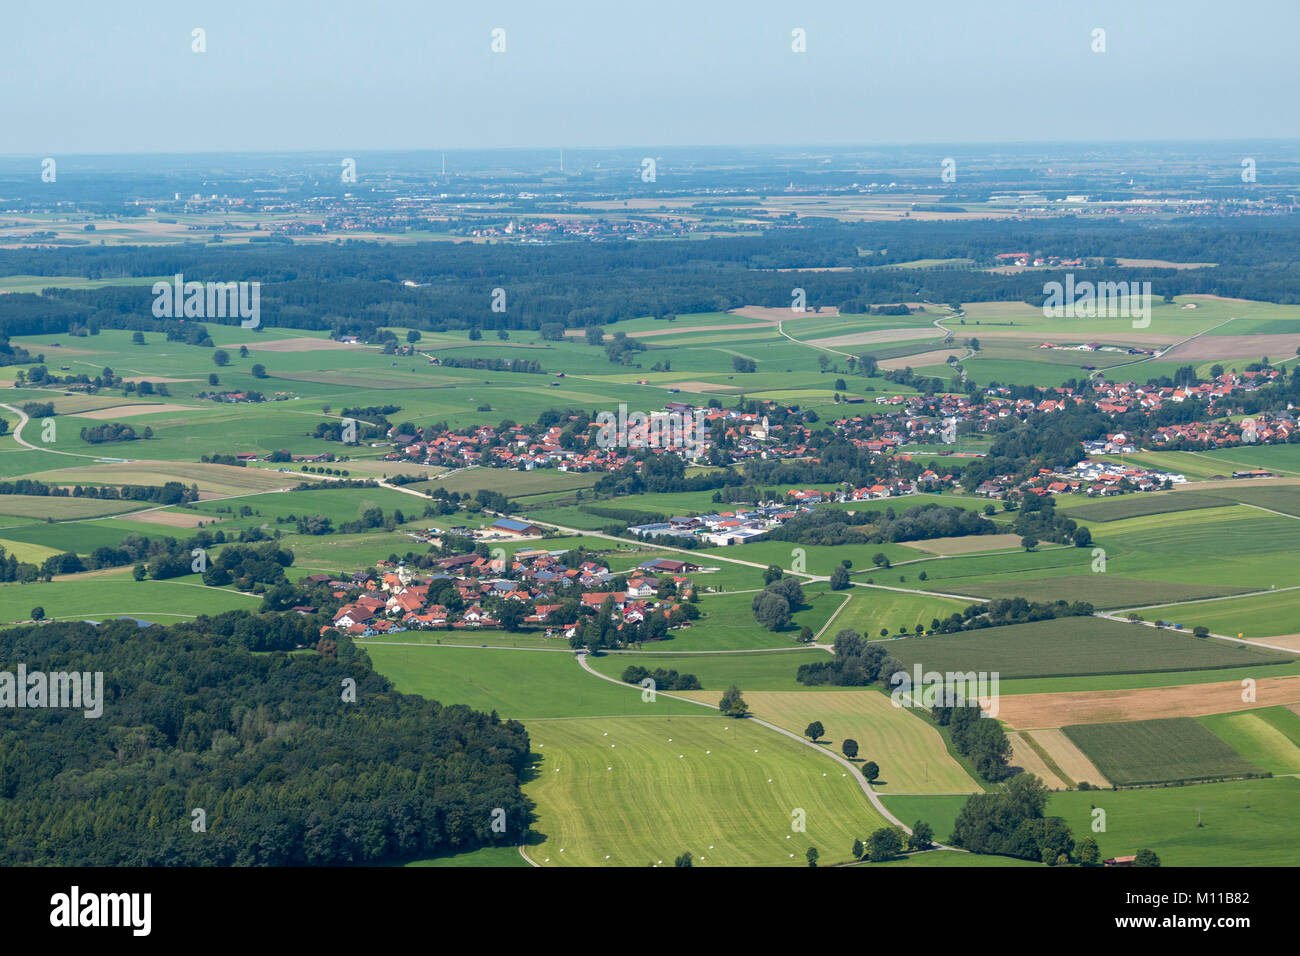 Aerial view of Entraching and Finning, Bavaria, Germany - Stock Image